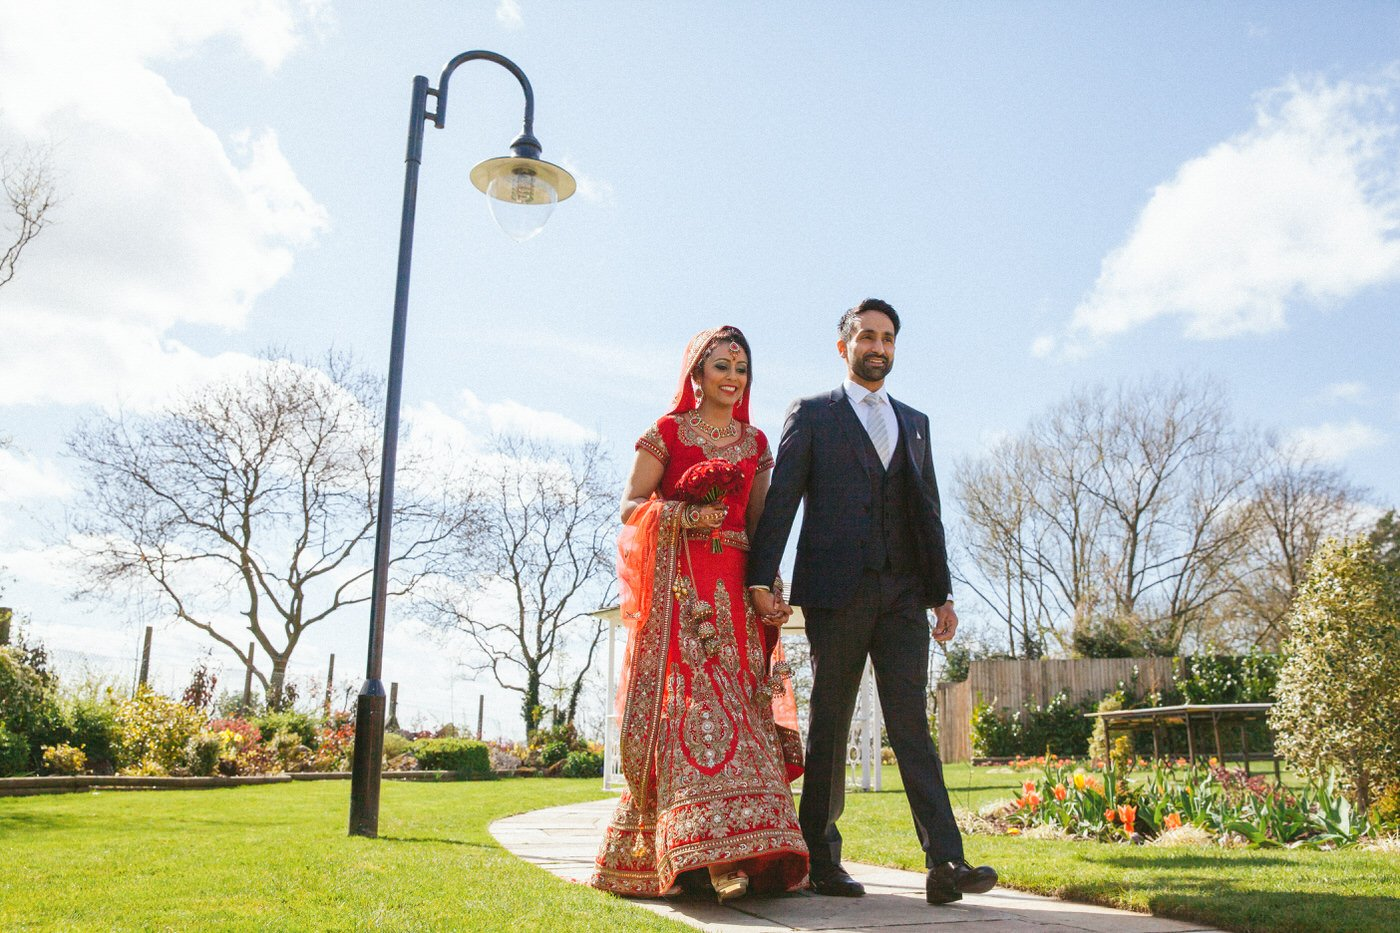 Tina and Televinder :: Sikh Wedding Photography at Park Hall